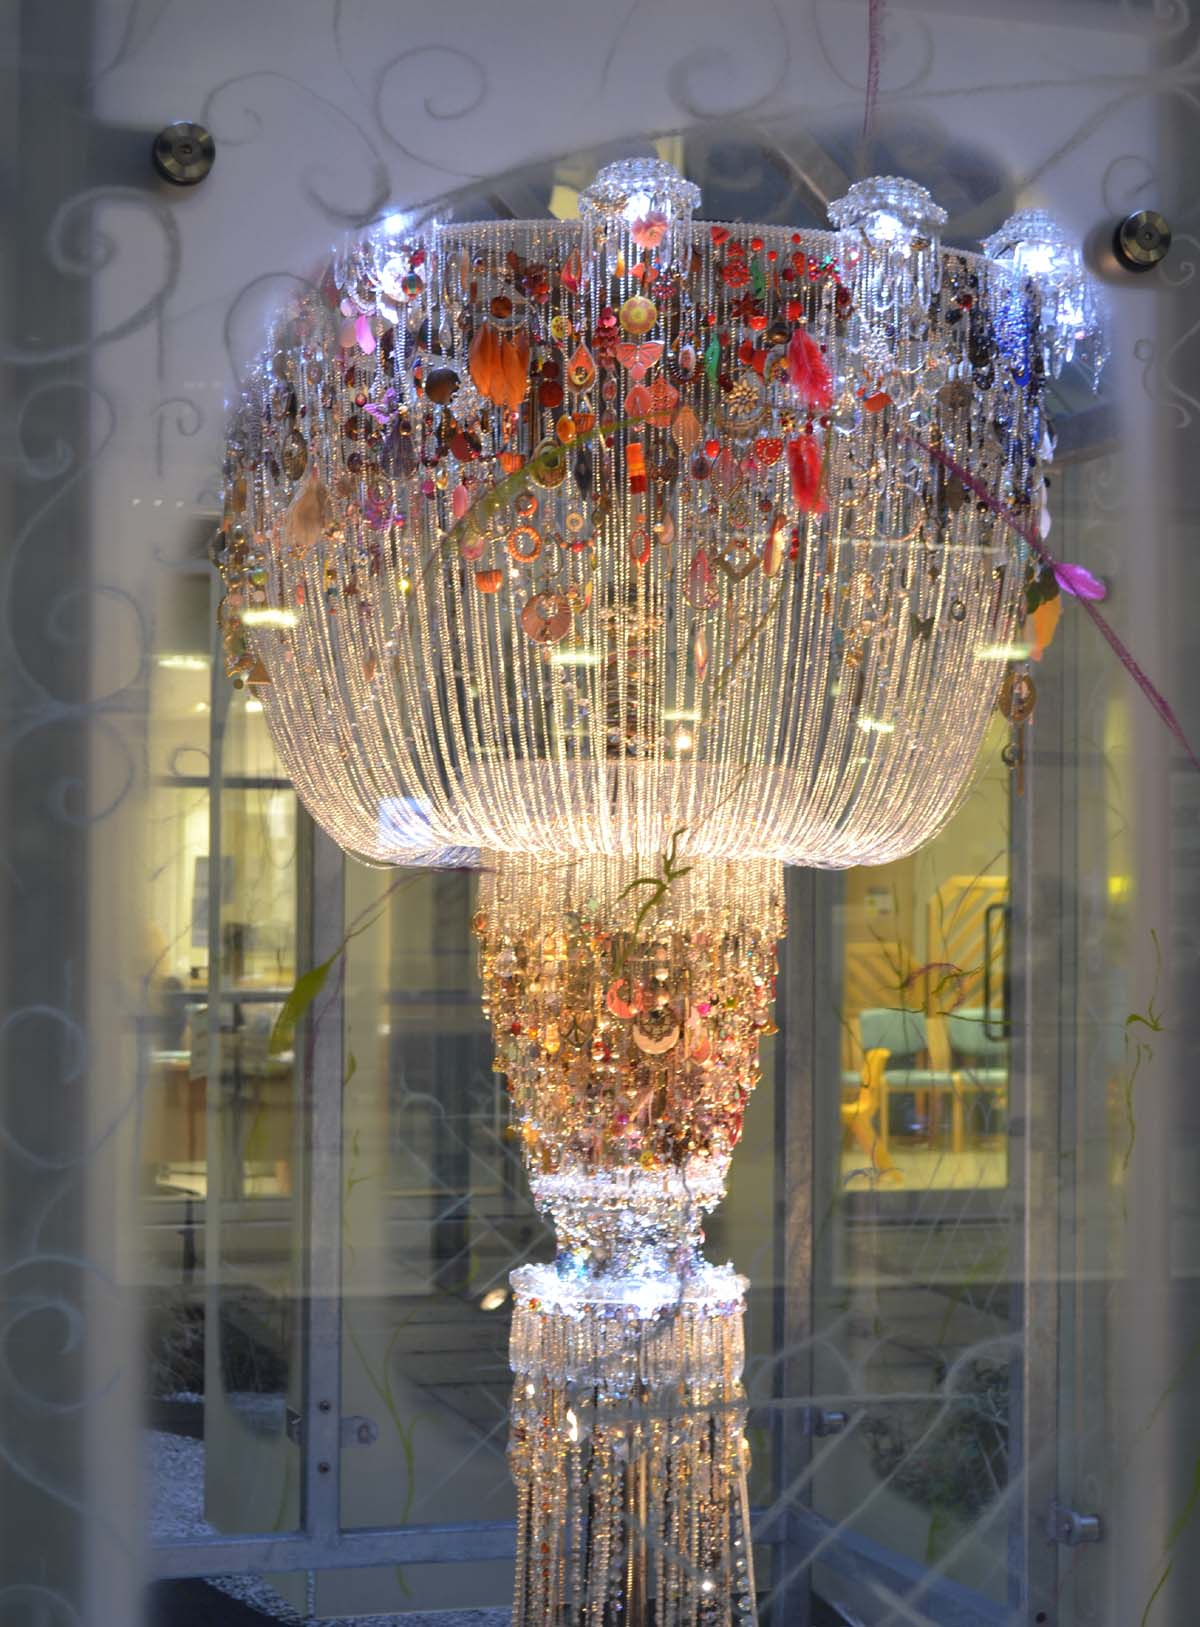 Manchester artists in running for £2,000 prize with chandelier made of earrings